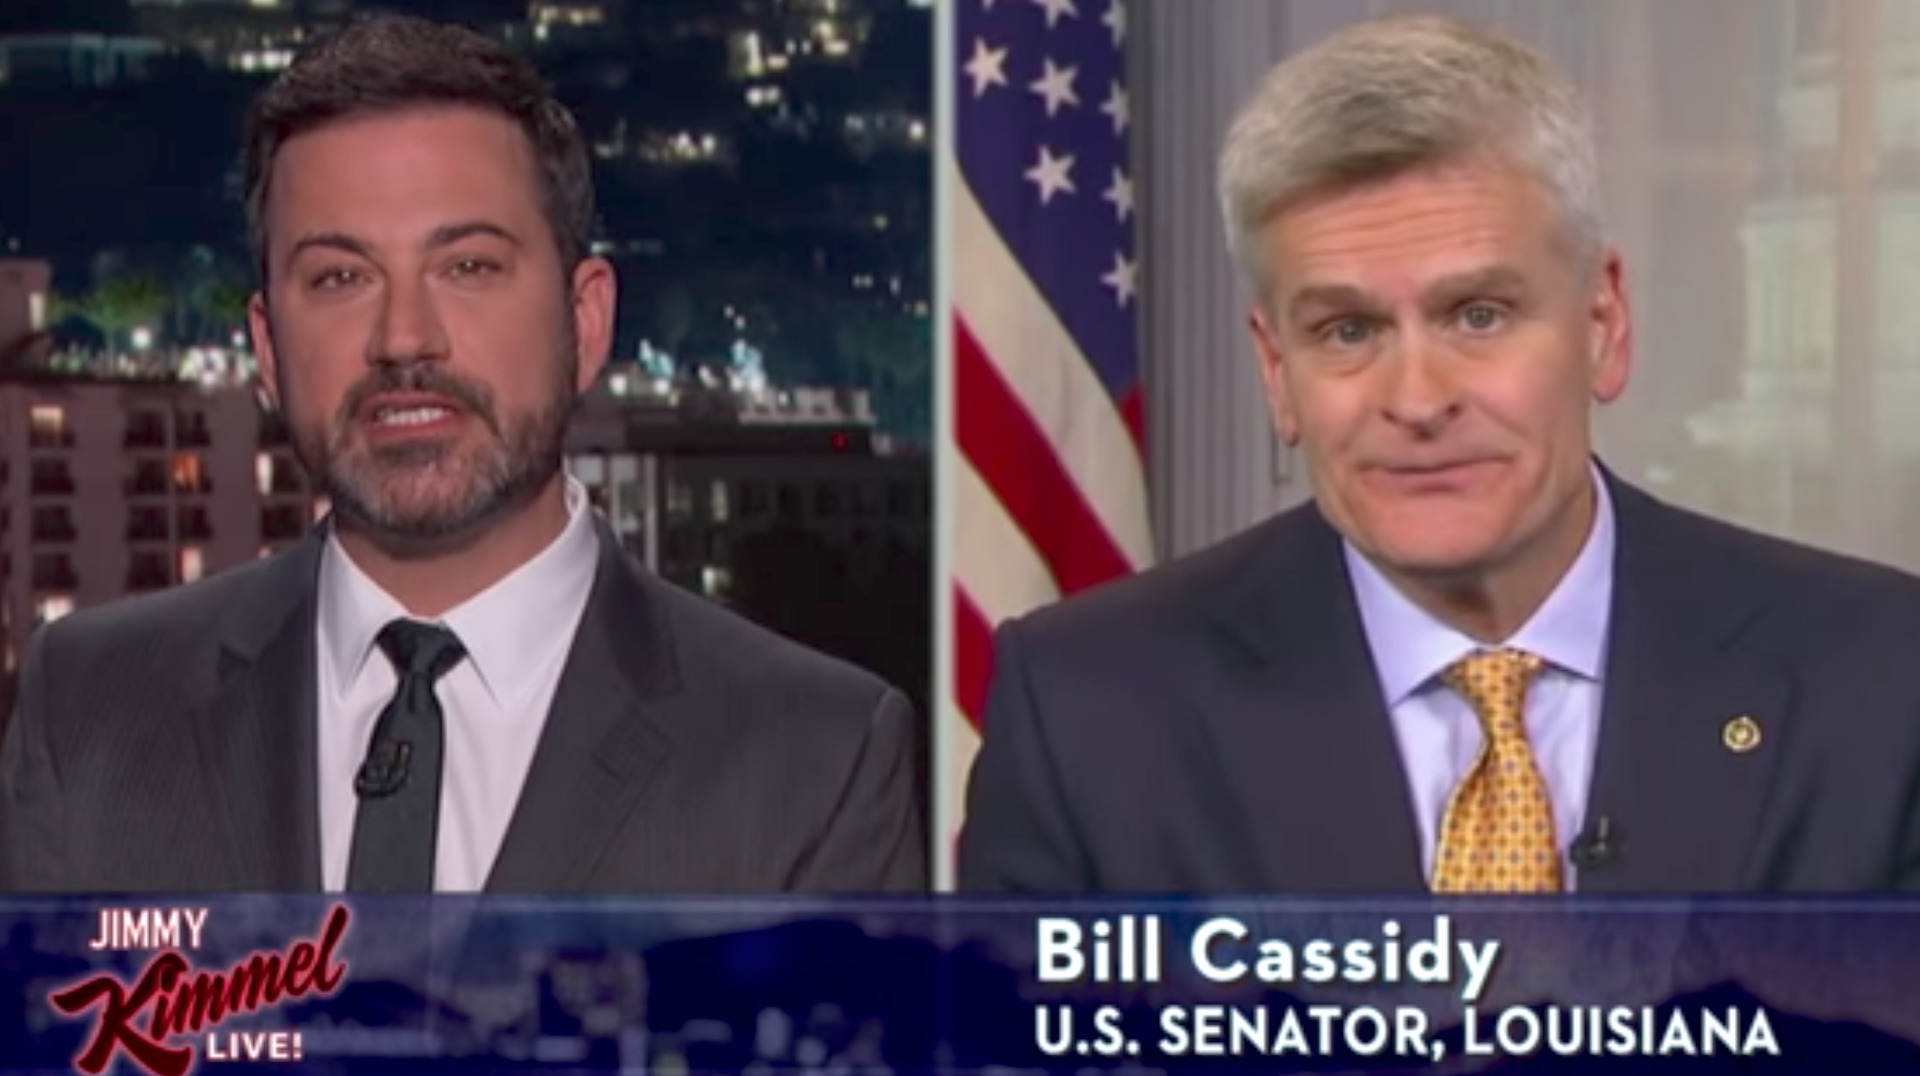 Jimmy Kimmel Says Sen. Bill Cassidy Lied To His Face About Obamacare Repeal